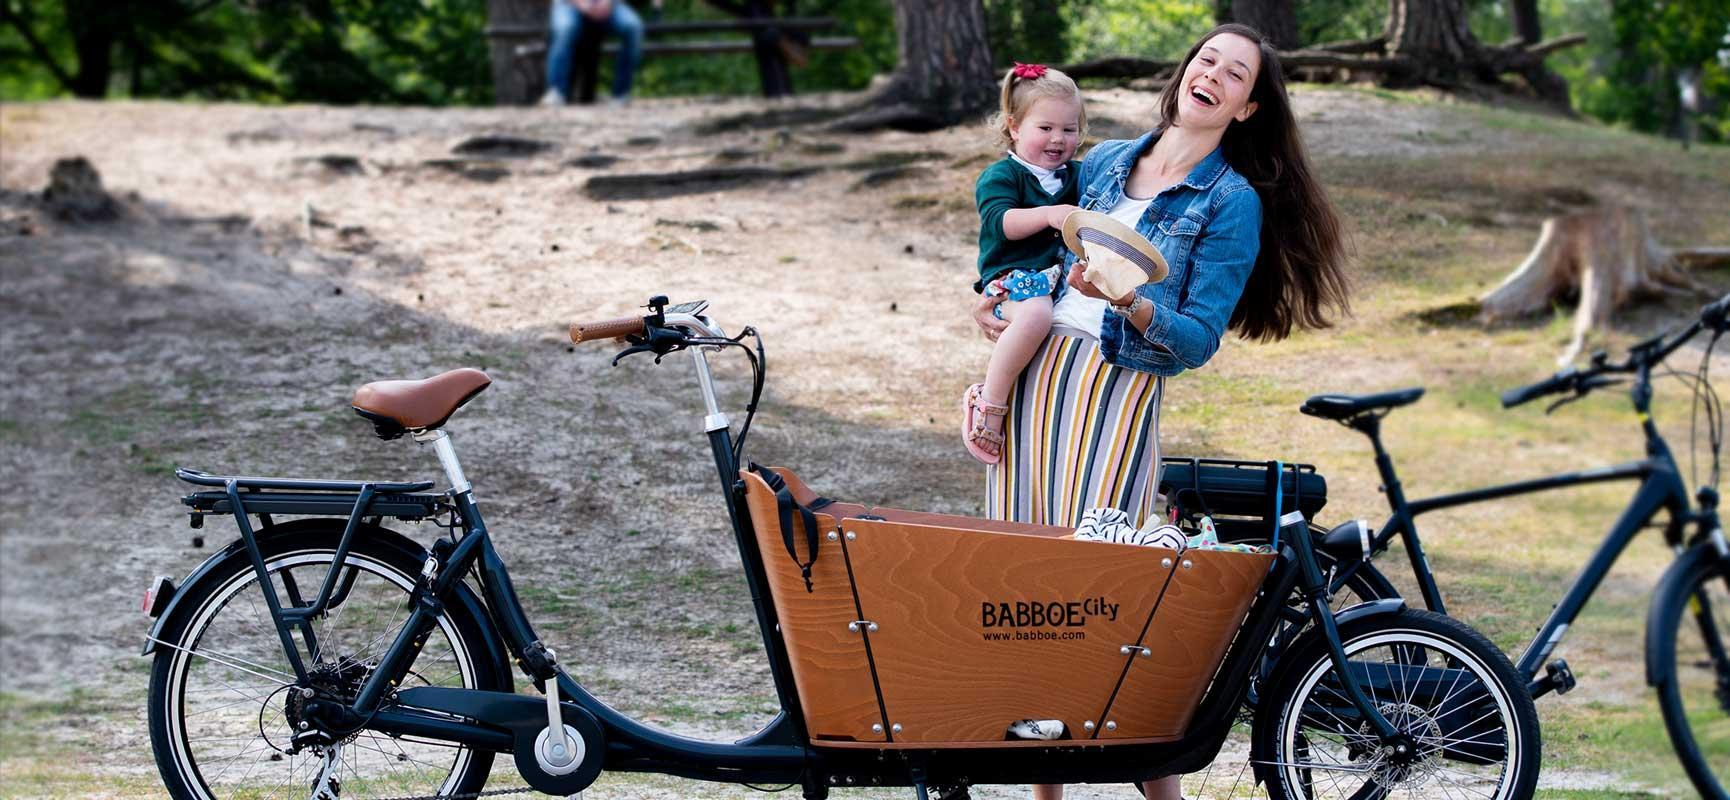 Electric cargo bike or not?